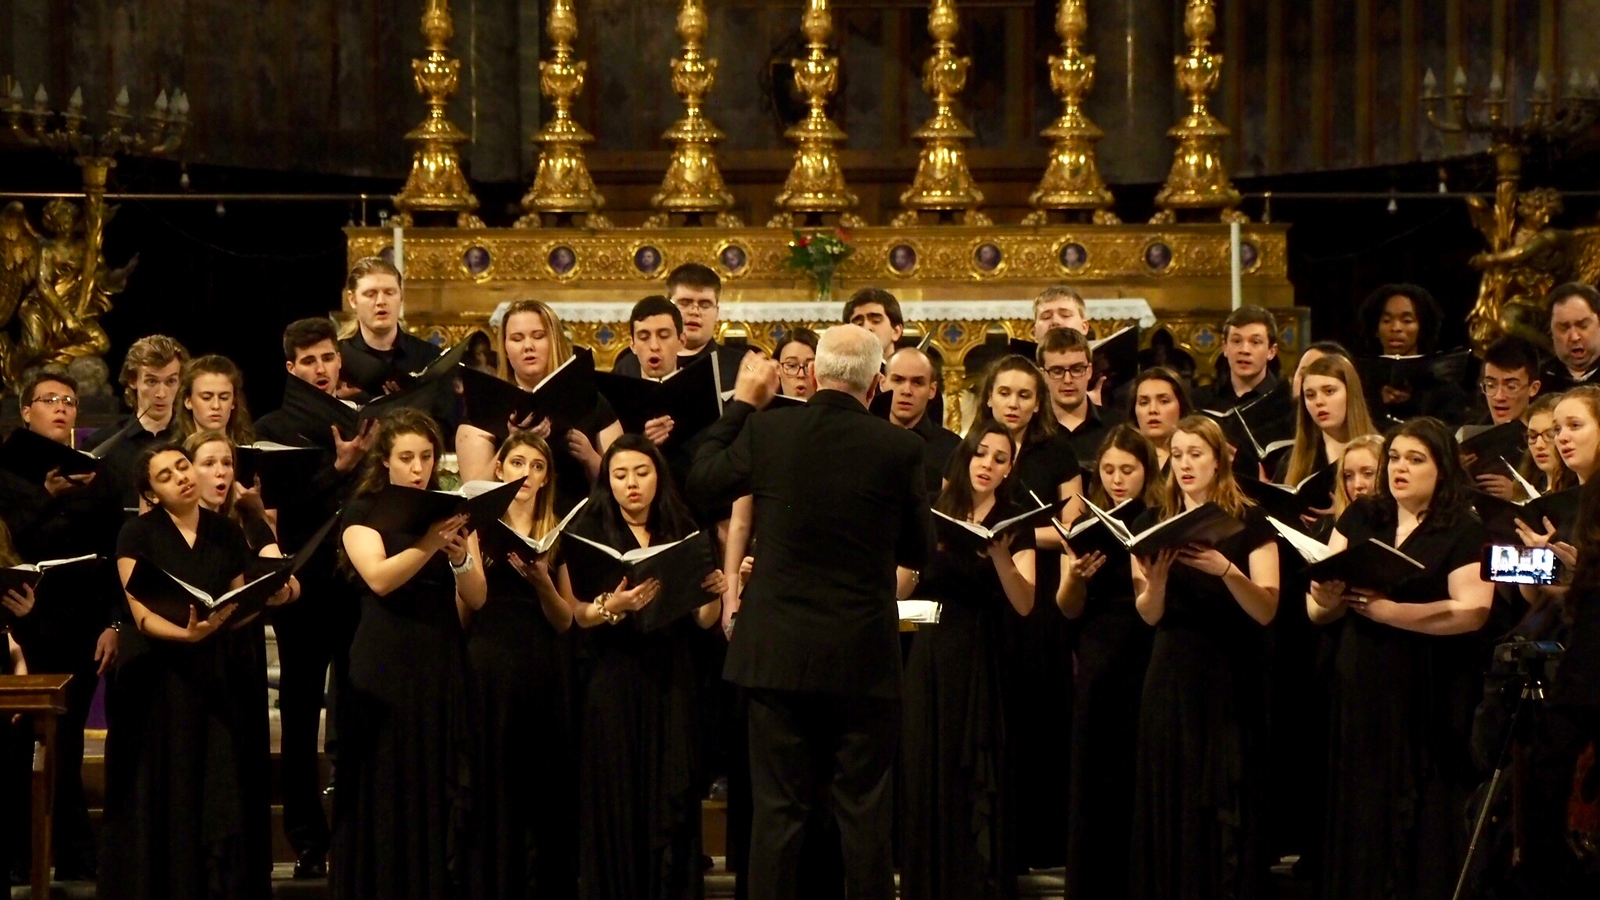 he UConn Concert Choir performs in Chieza Santa Maria Sopra Minerva